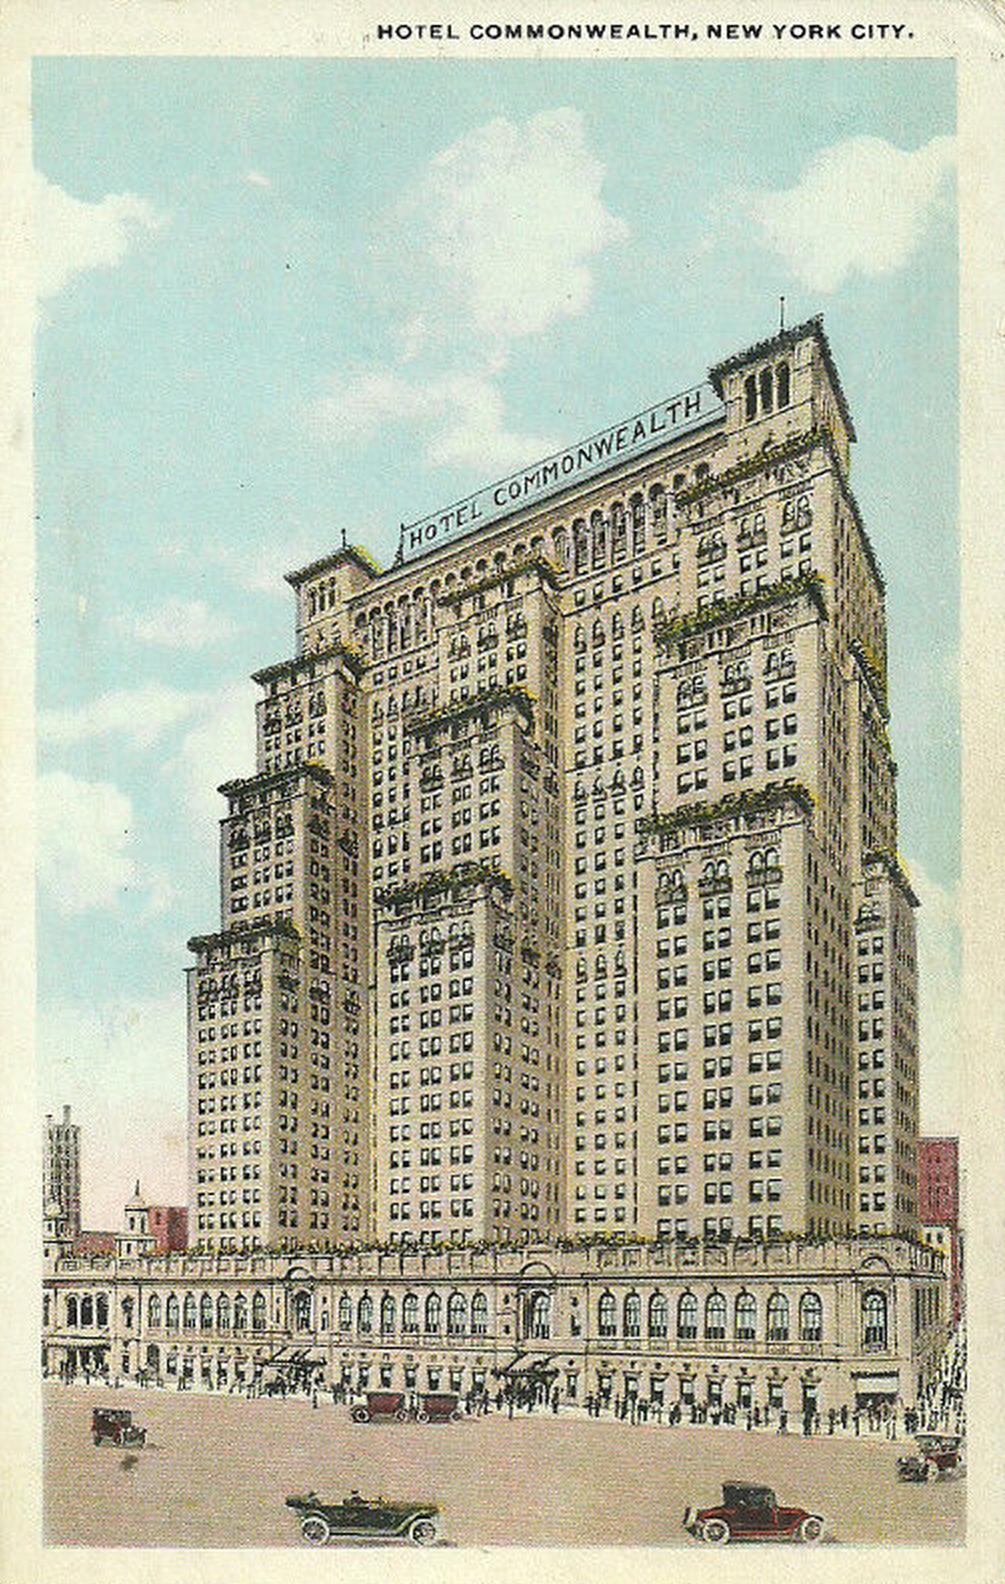 In 1918 New York's Hotel Commonwealth Was Going To Be The Largest In The World